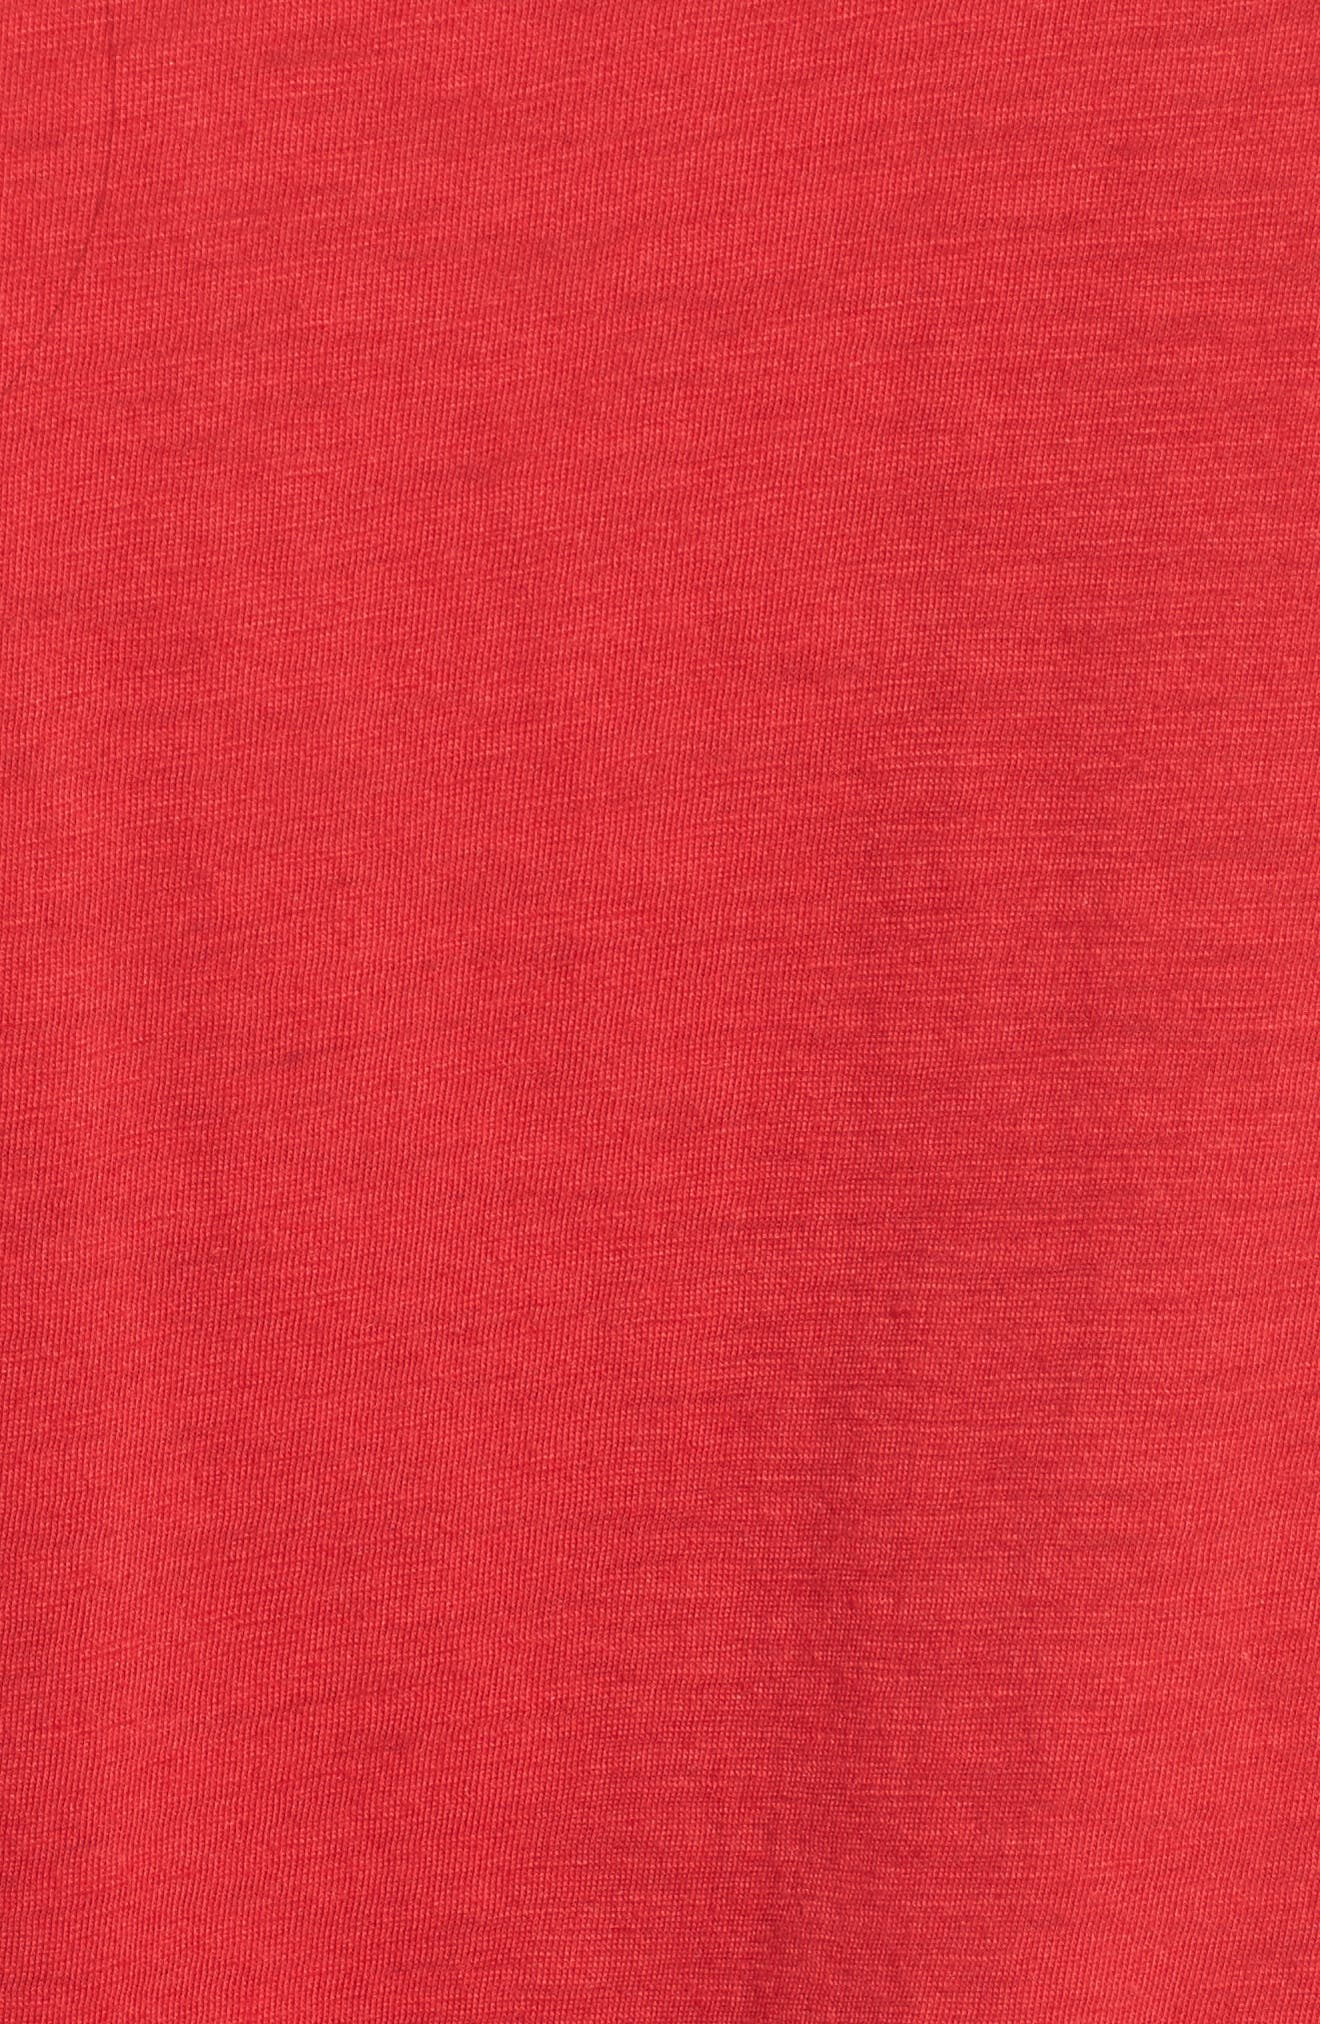 Grommet Lace-Up Tee,                             Alternate thumbnail 5, color,                             American Red